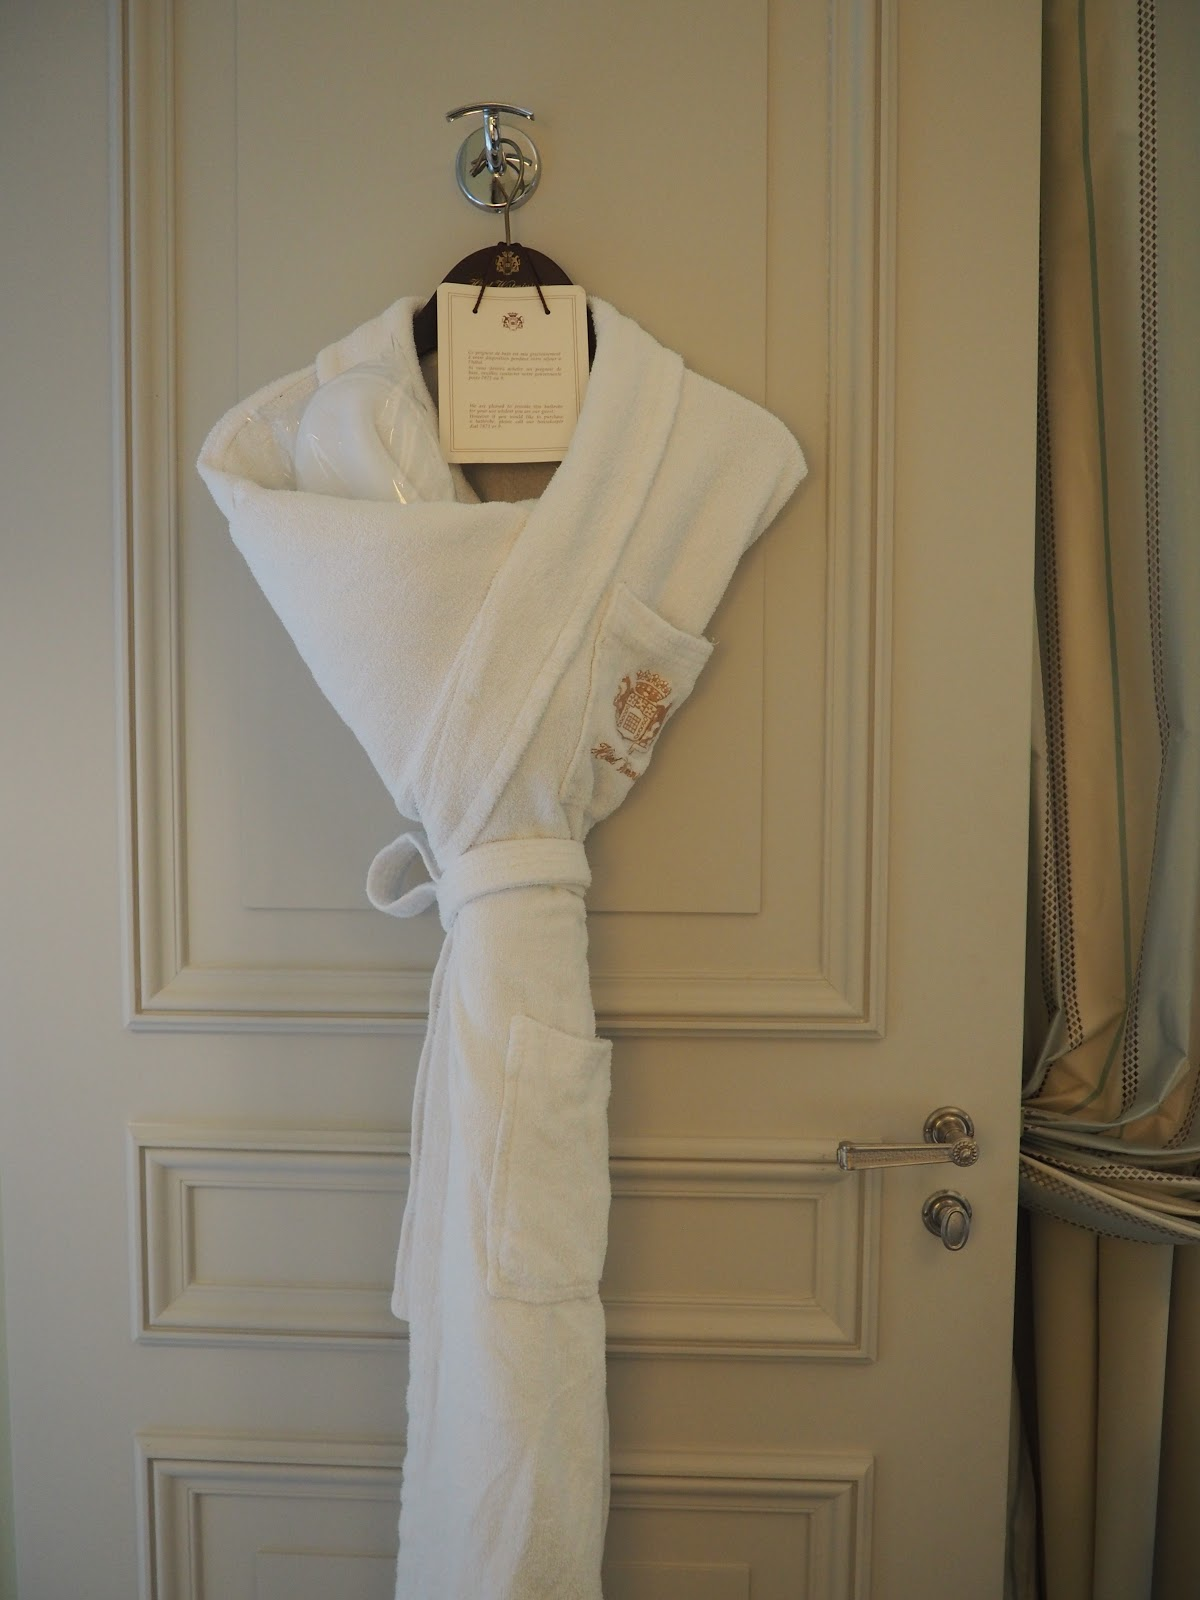 dressing gown hanging on the back of the door, Saint-Honore-Suite, Hotel Westminster, Paris